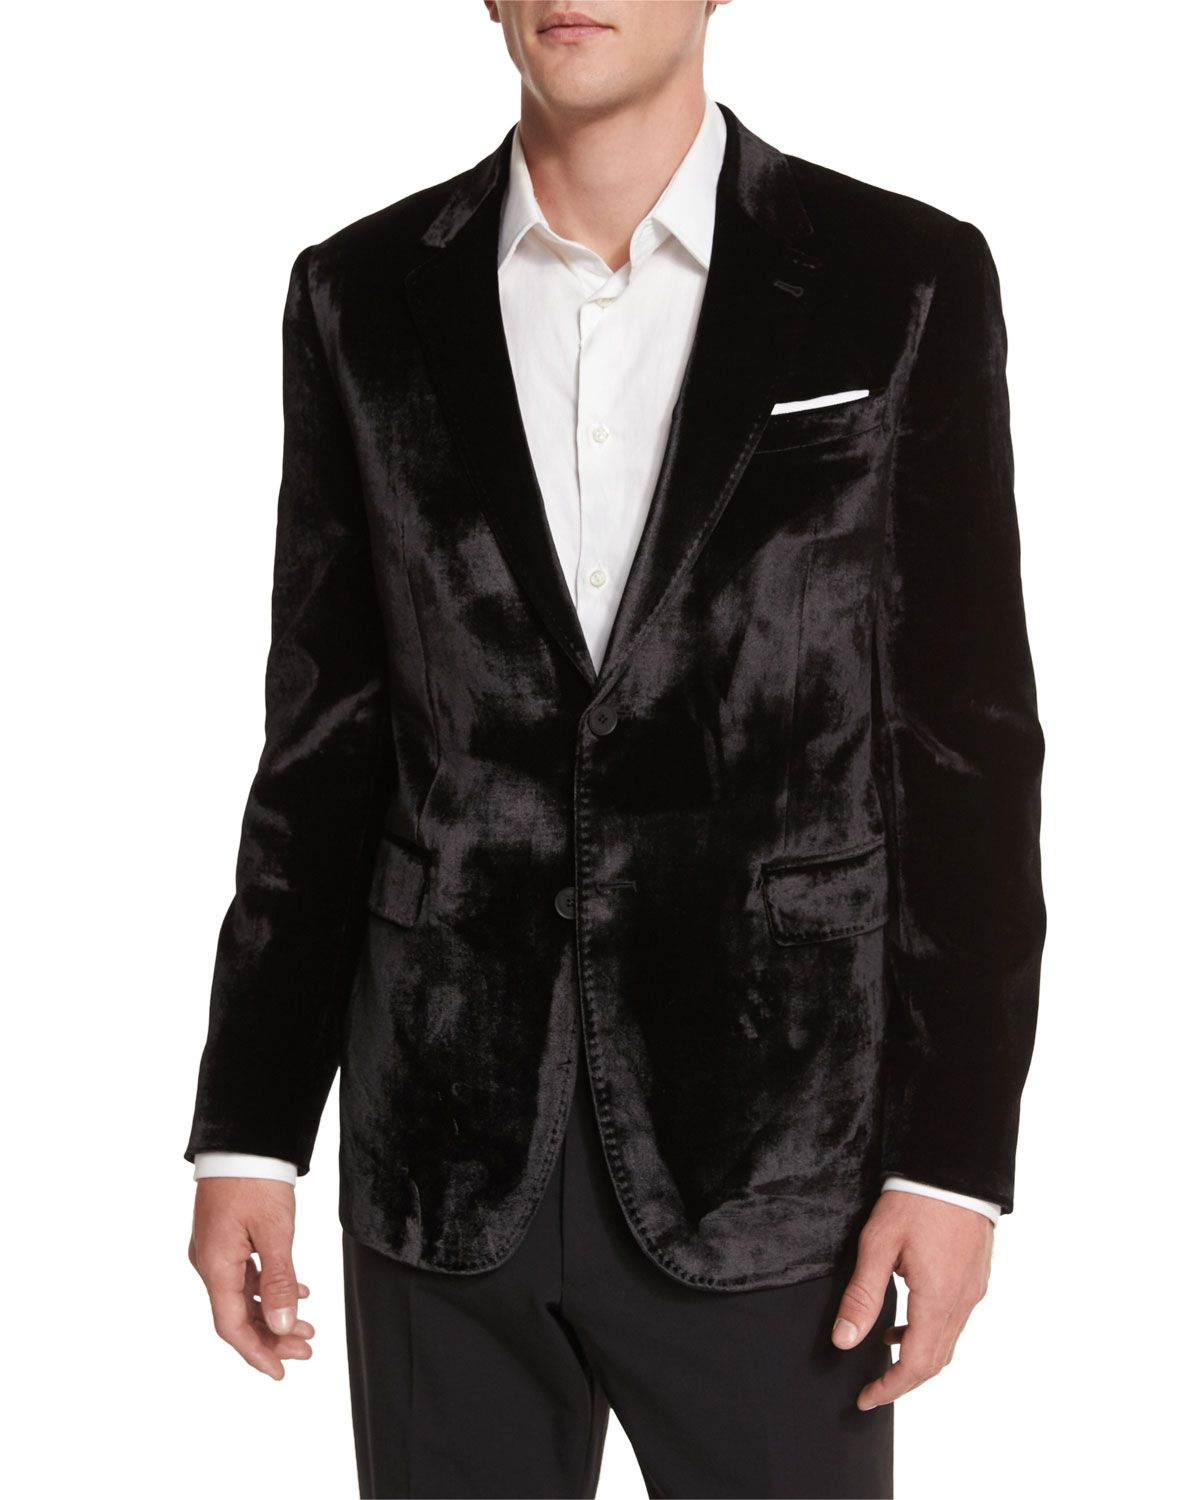 Bayard Liquid Velvet Two-Button Jacket, Black - Paul Smith